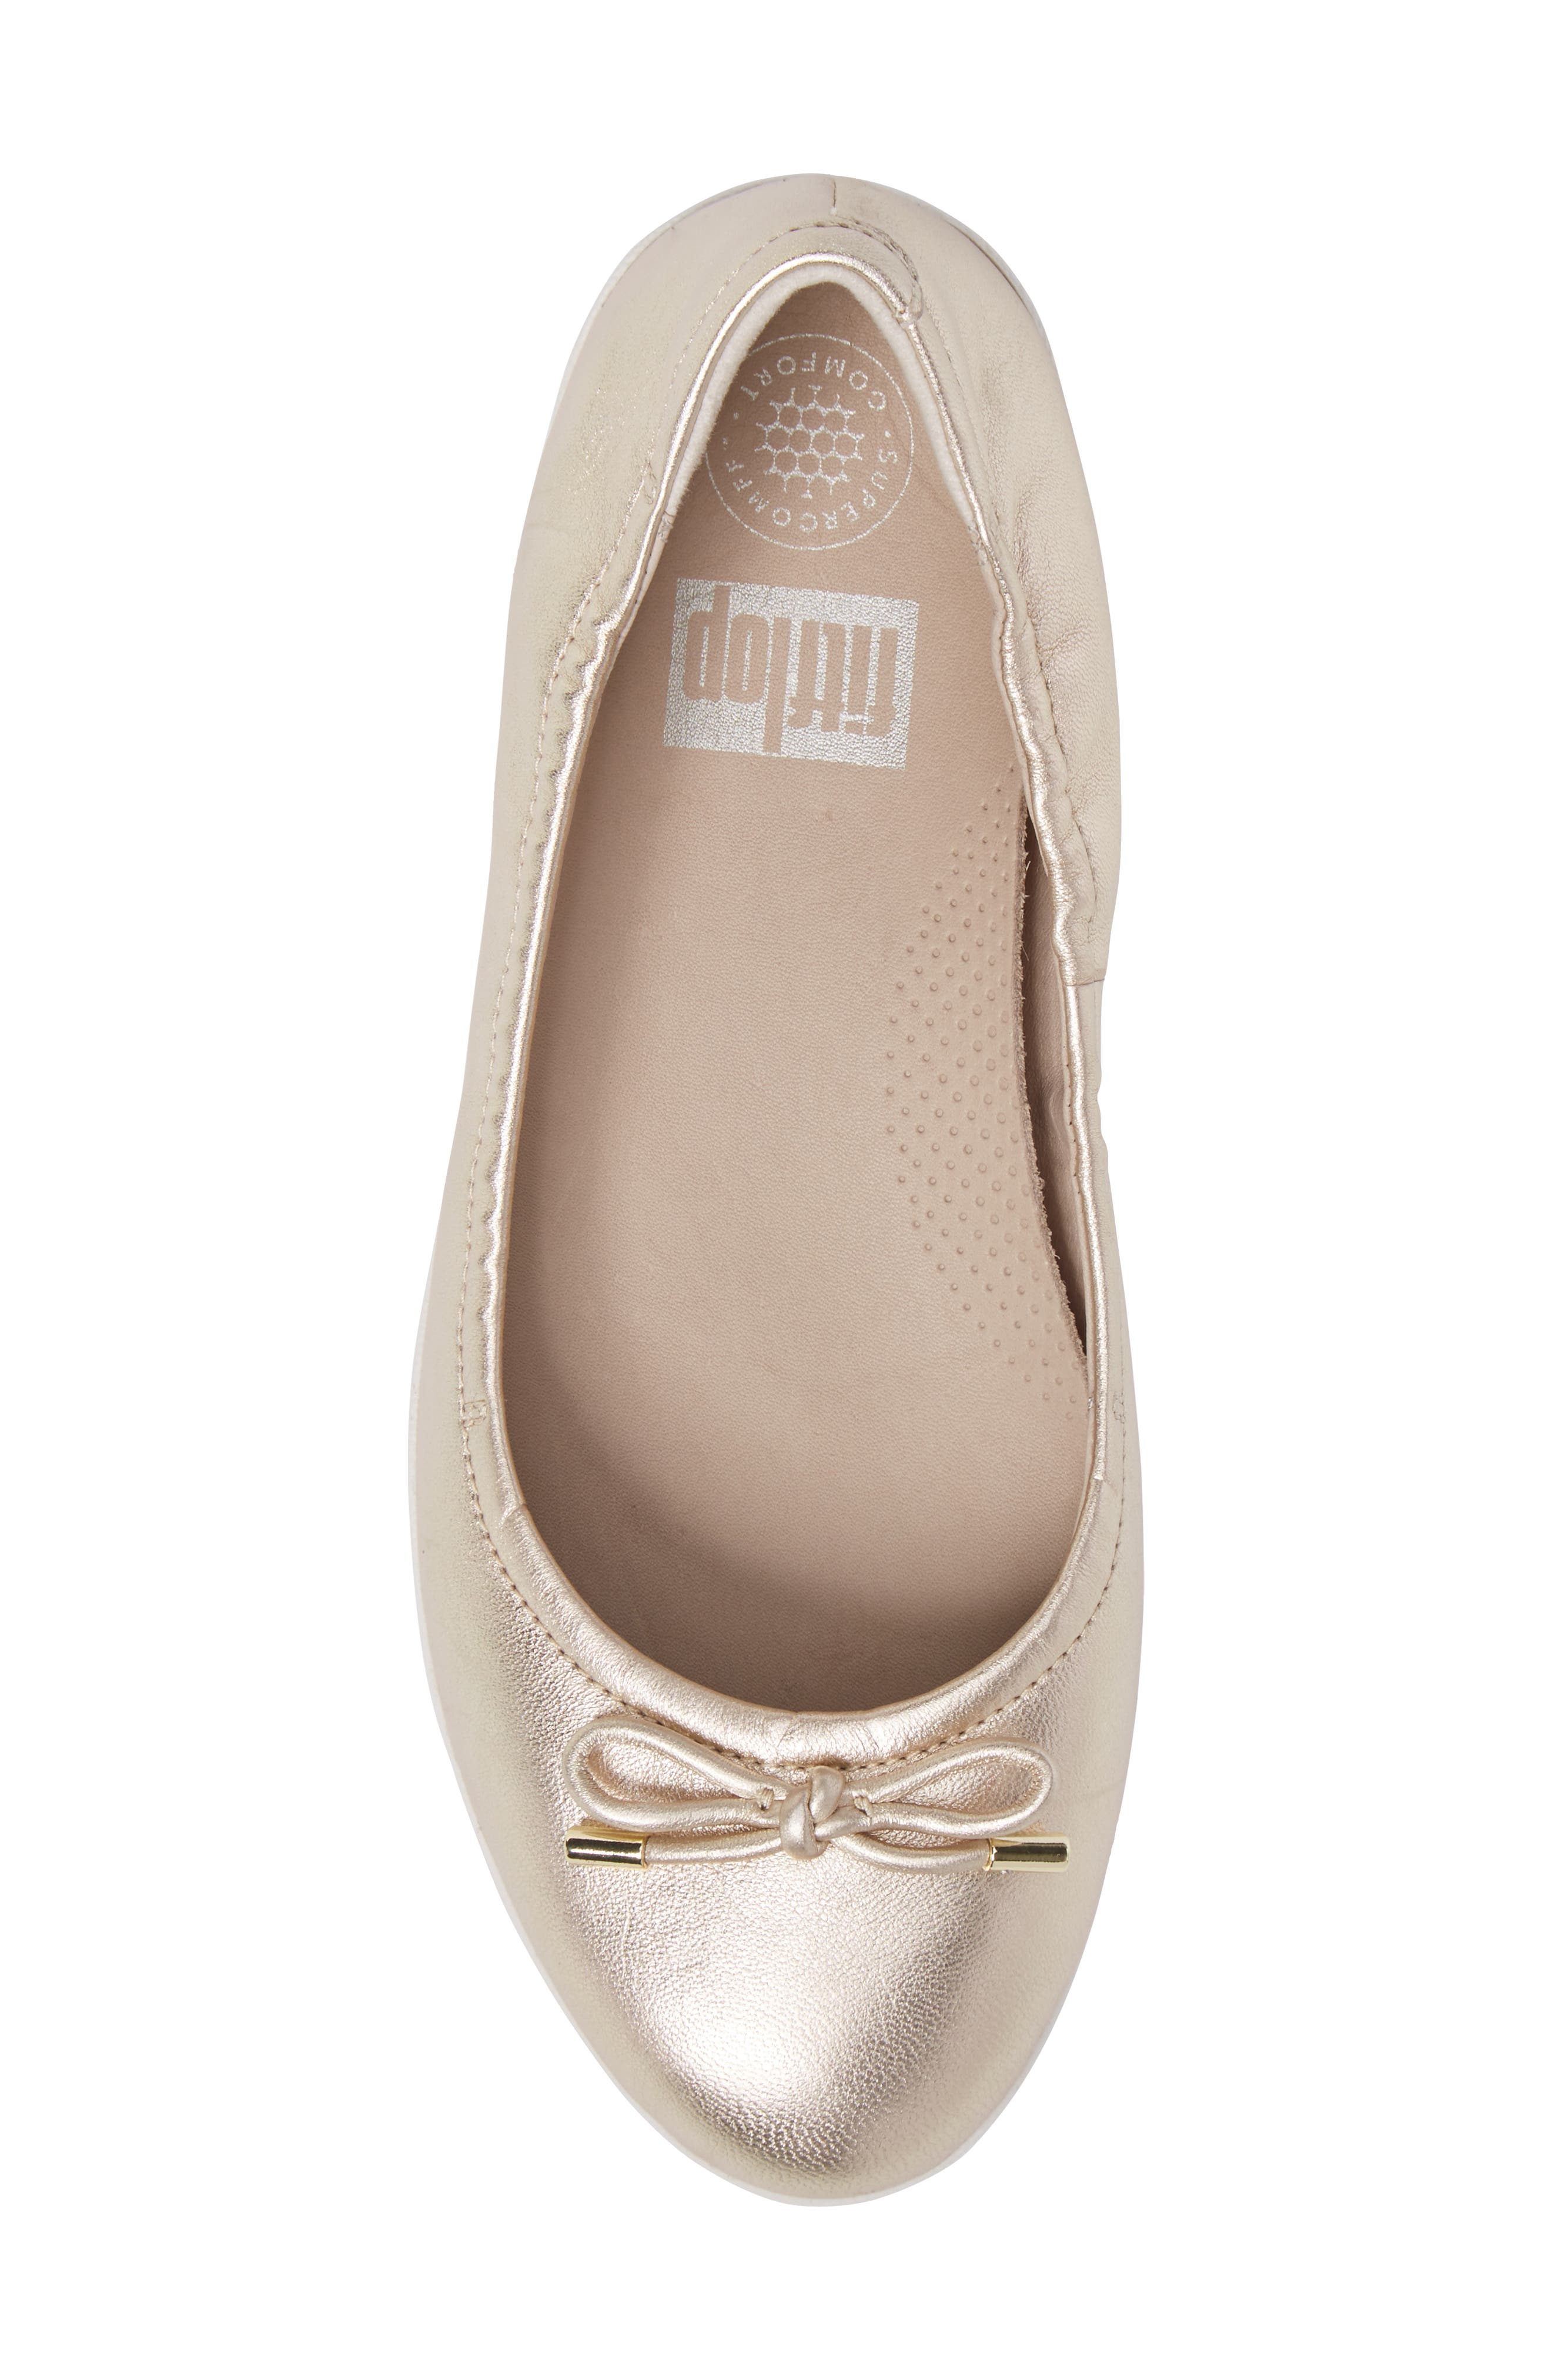 Superbendy Ballerina Flat,                             Alternate thumbnail 5, color,                             Pale Gold Leather